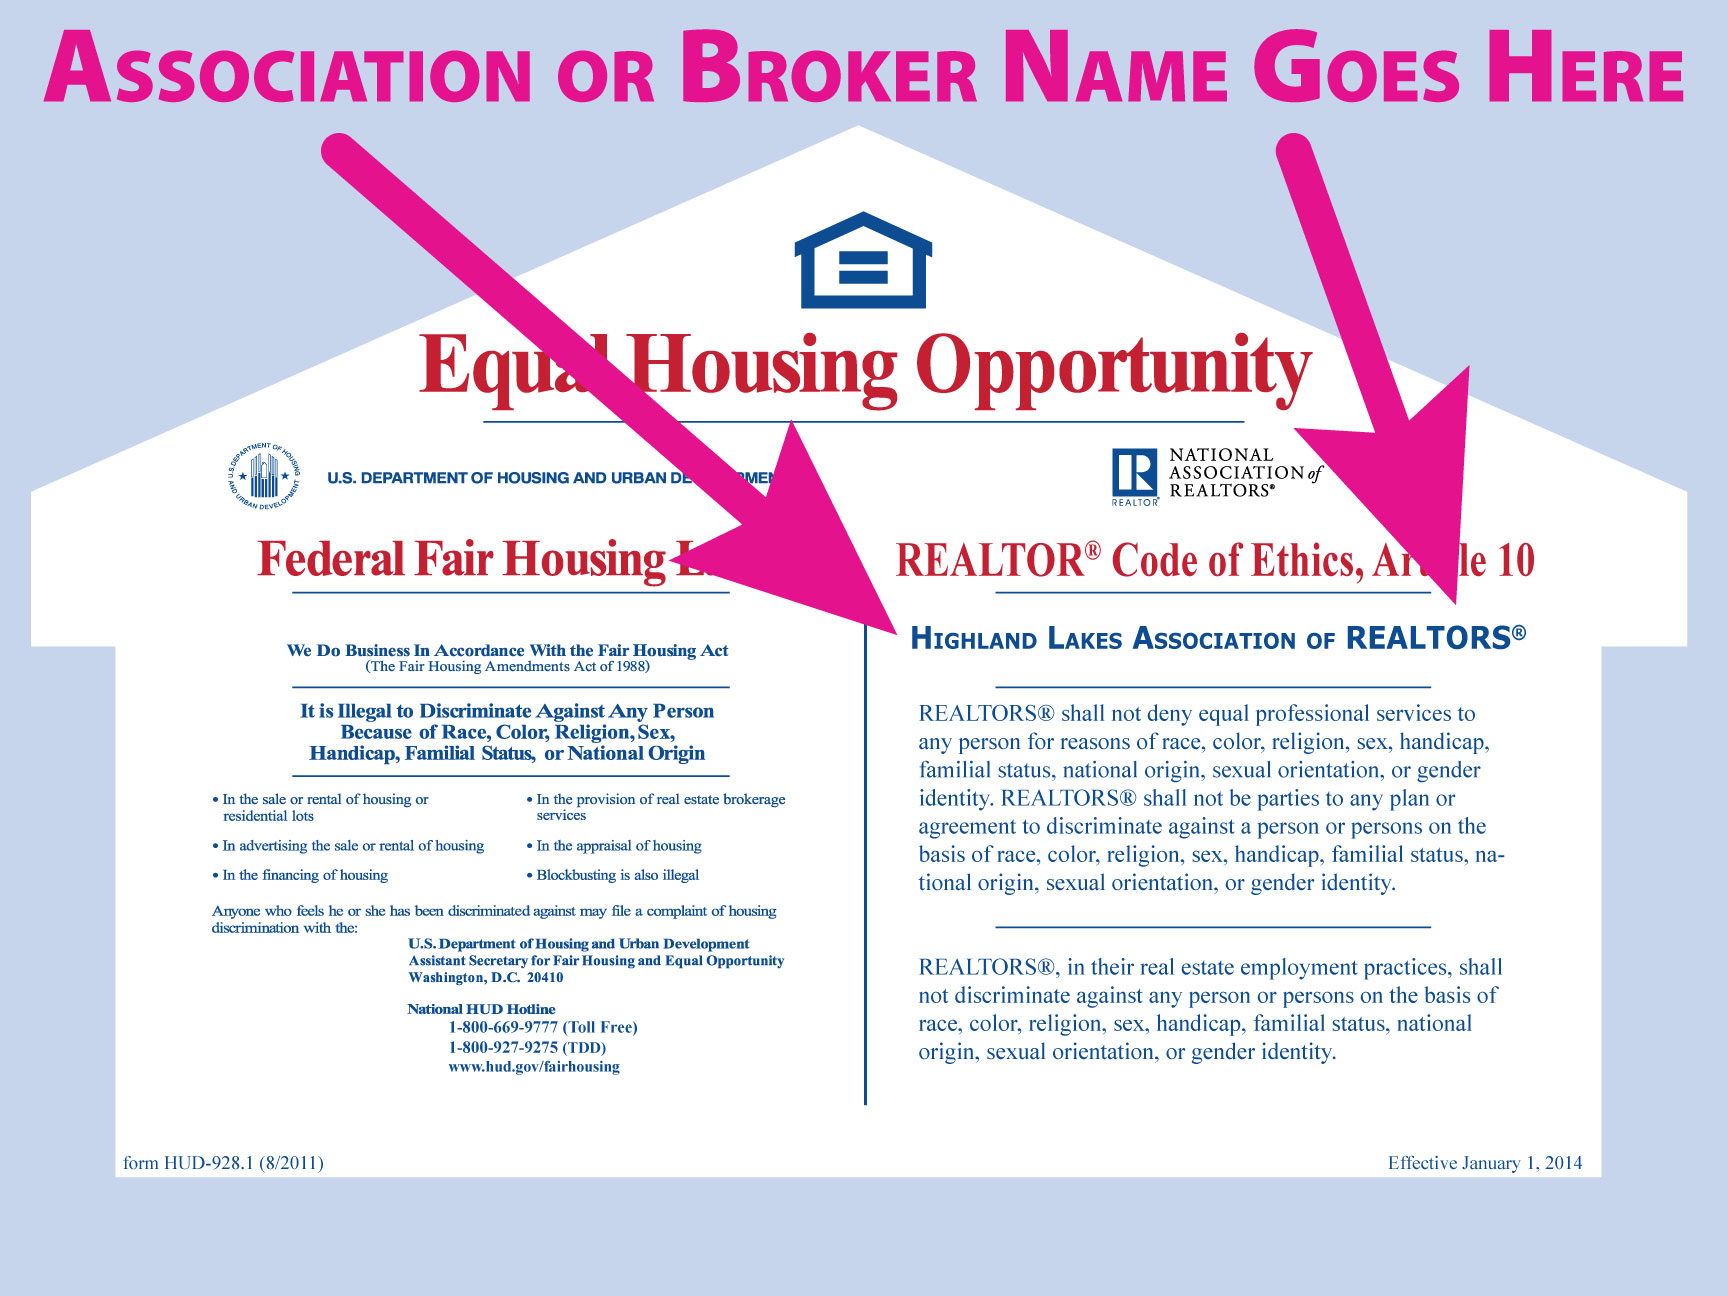 Equal Housing Opportunity Posters